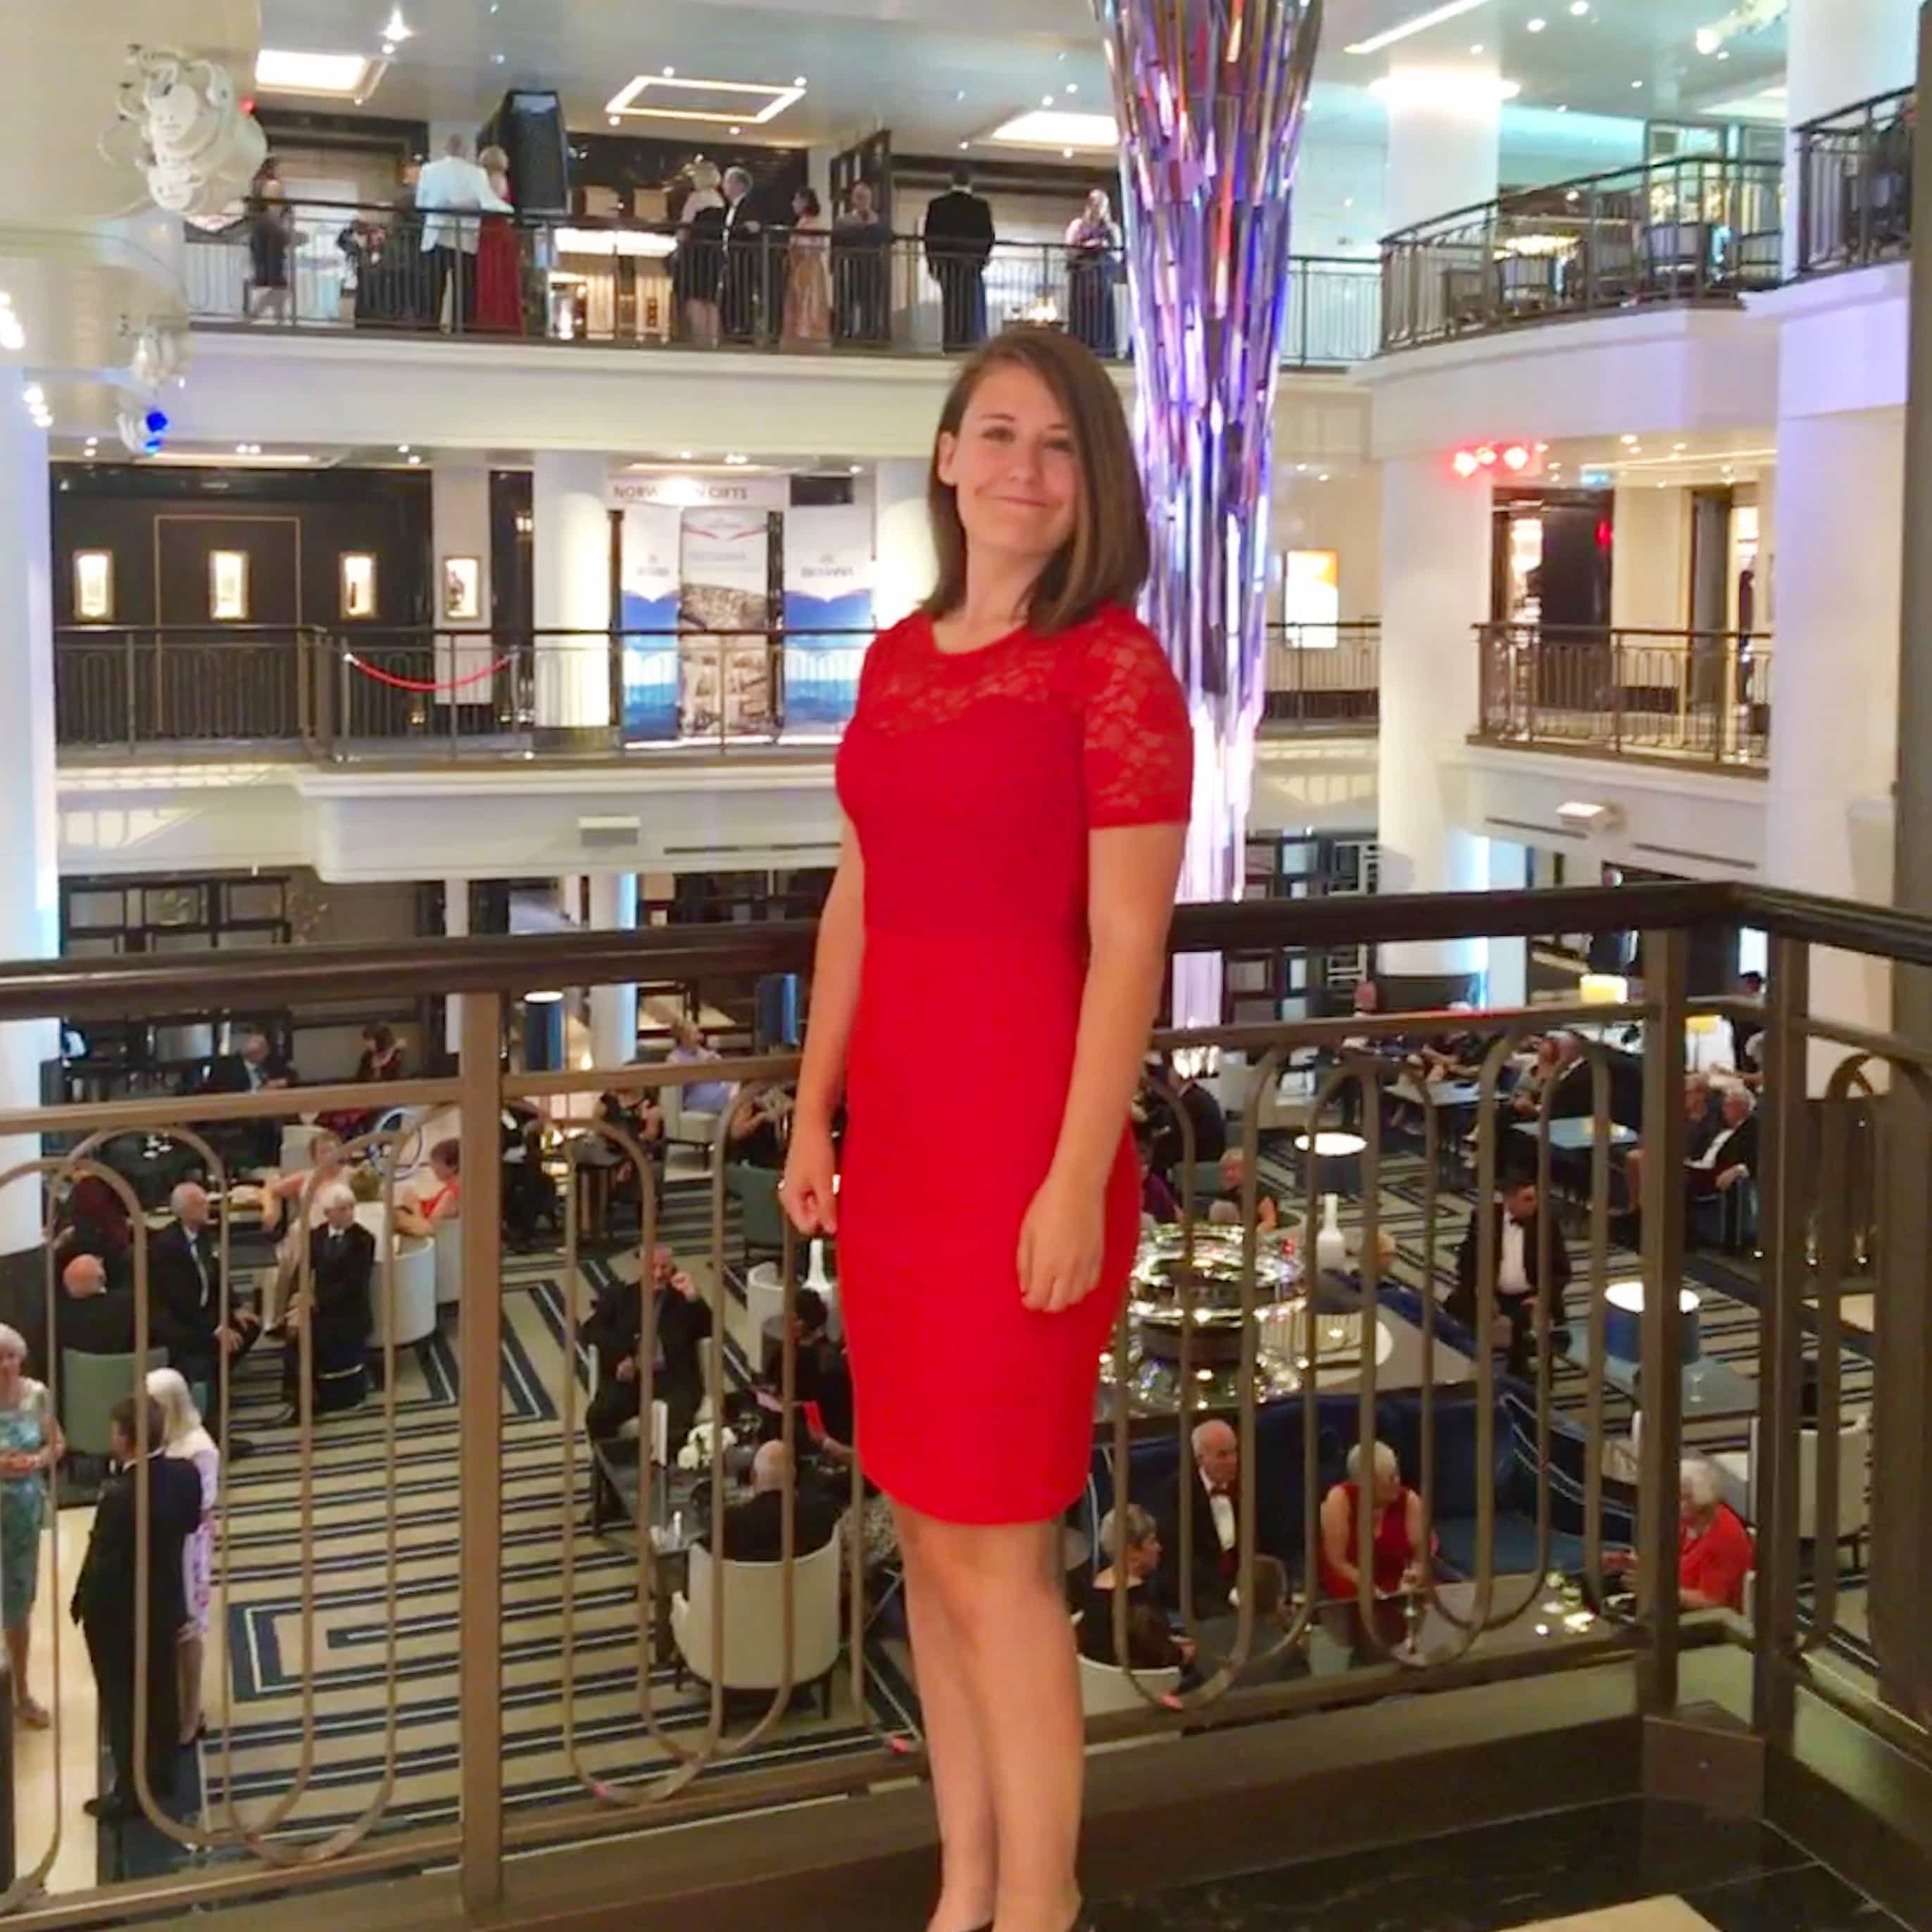 p&o formal night britannia atrium red dress